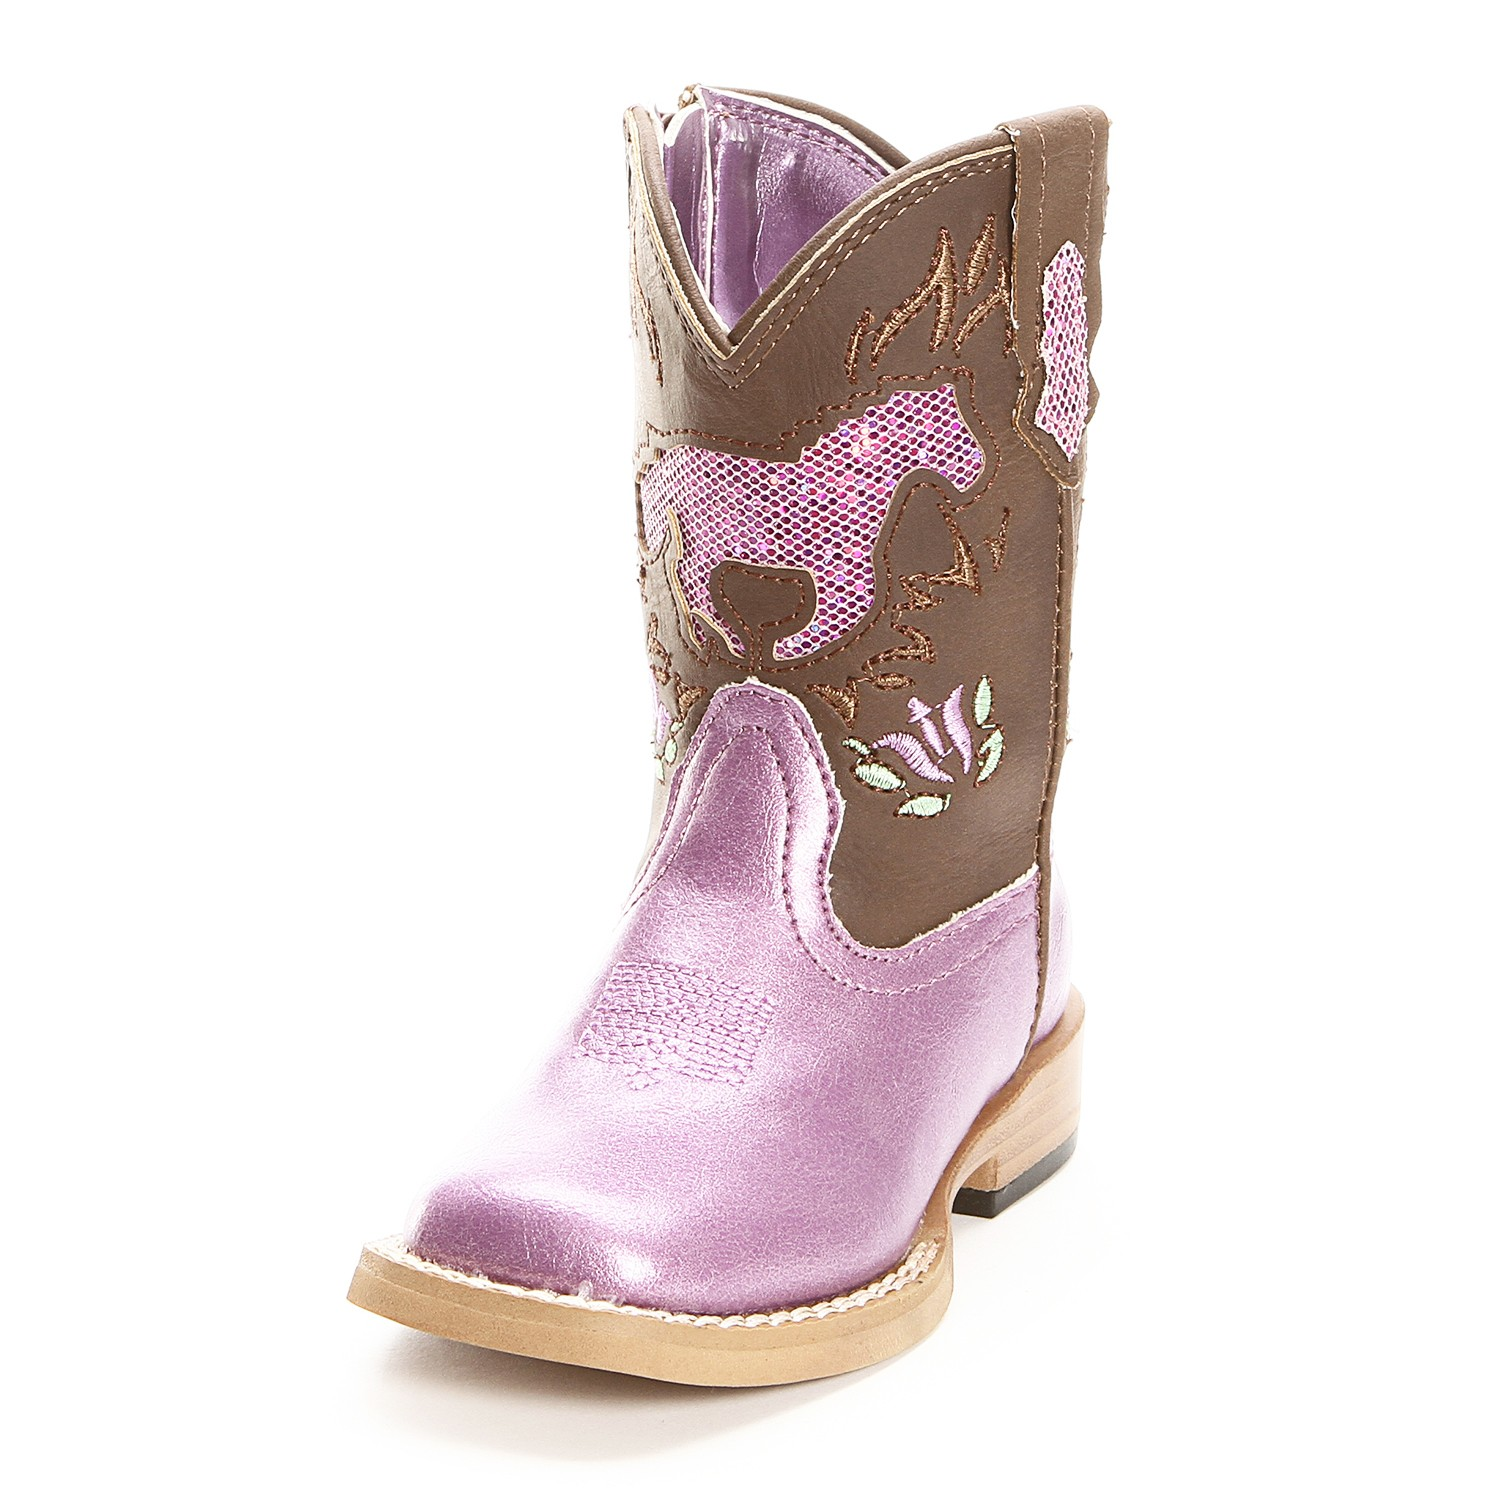 Childrens Cowgirl Boots HoRdly1z